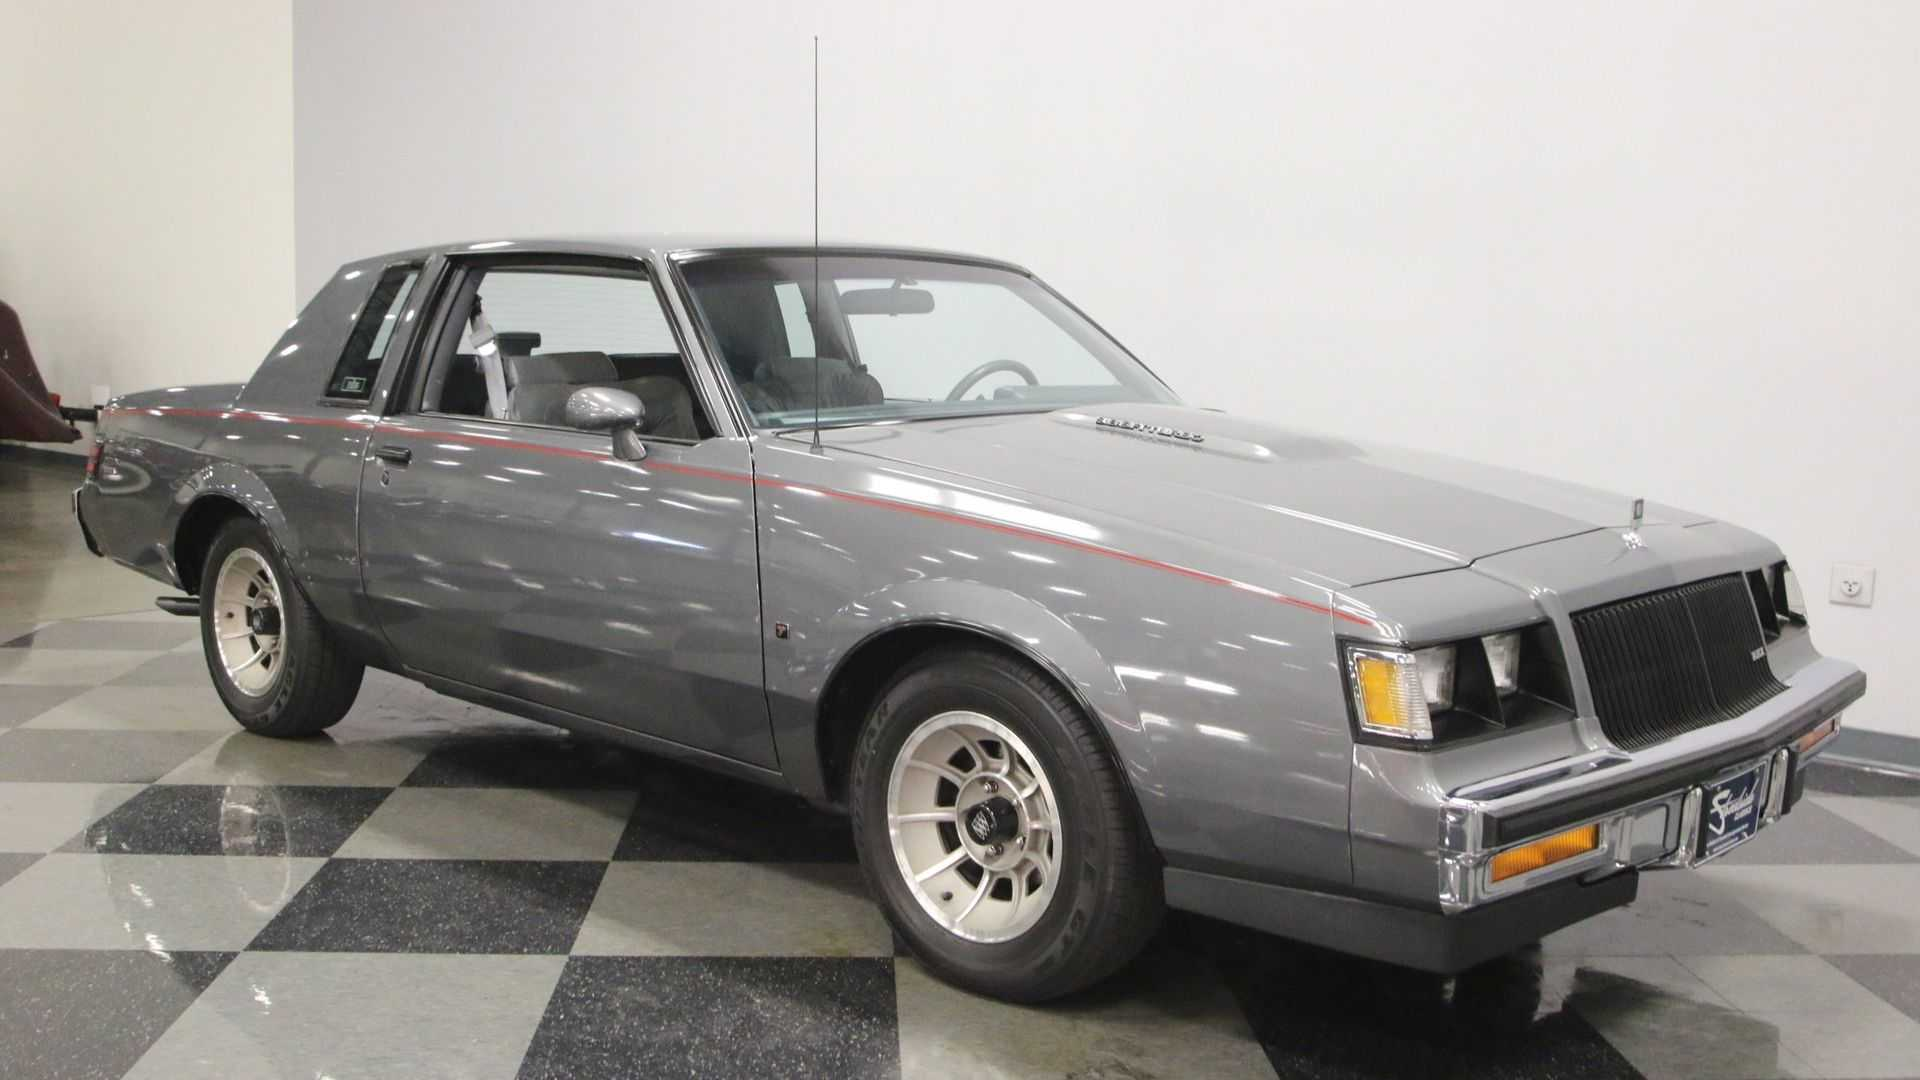 Buick Regal T Type >> Surprising People Would Be Easy In A 1987 Buick Regal